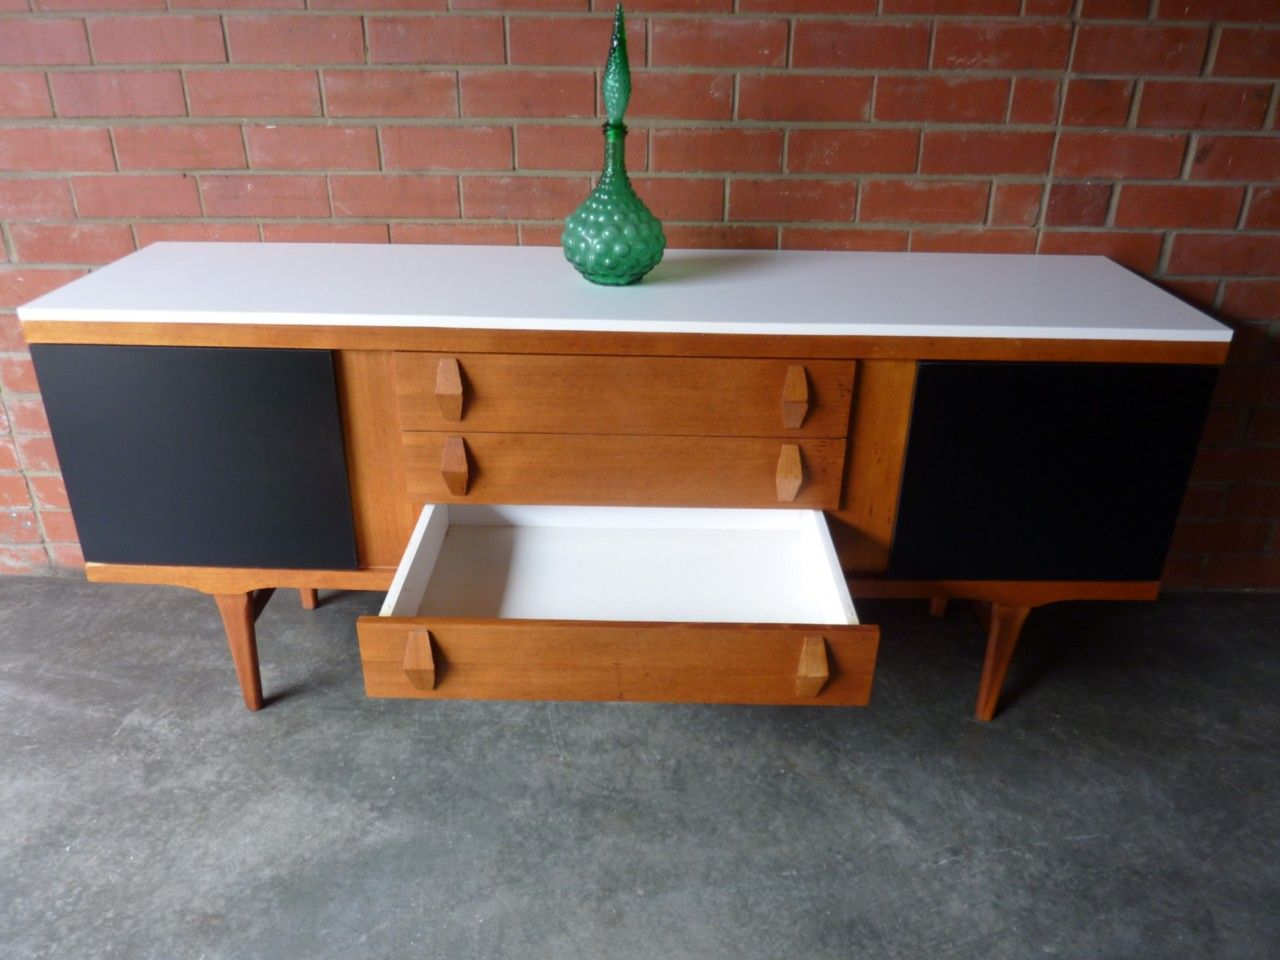 Retro Sideboard Renovation.